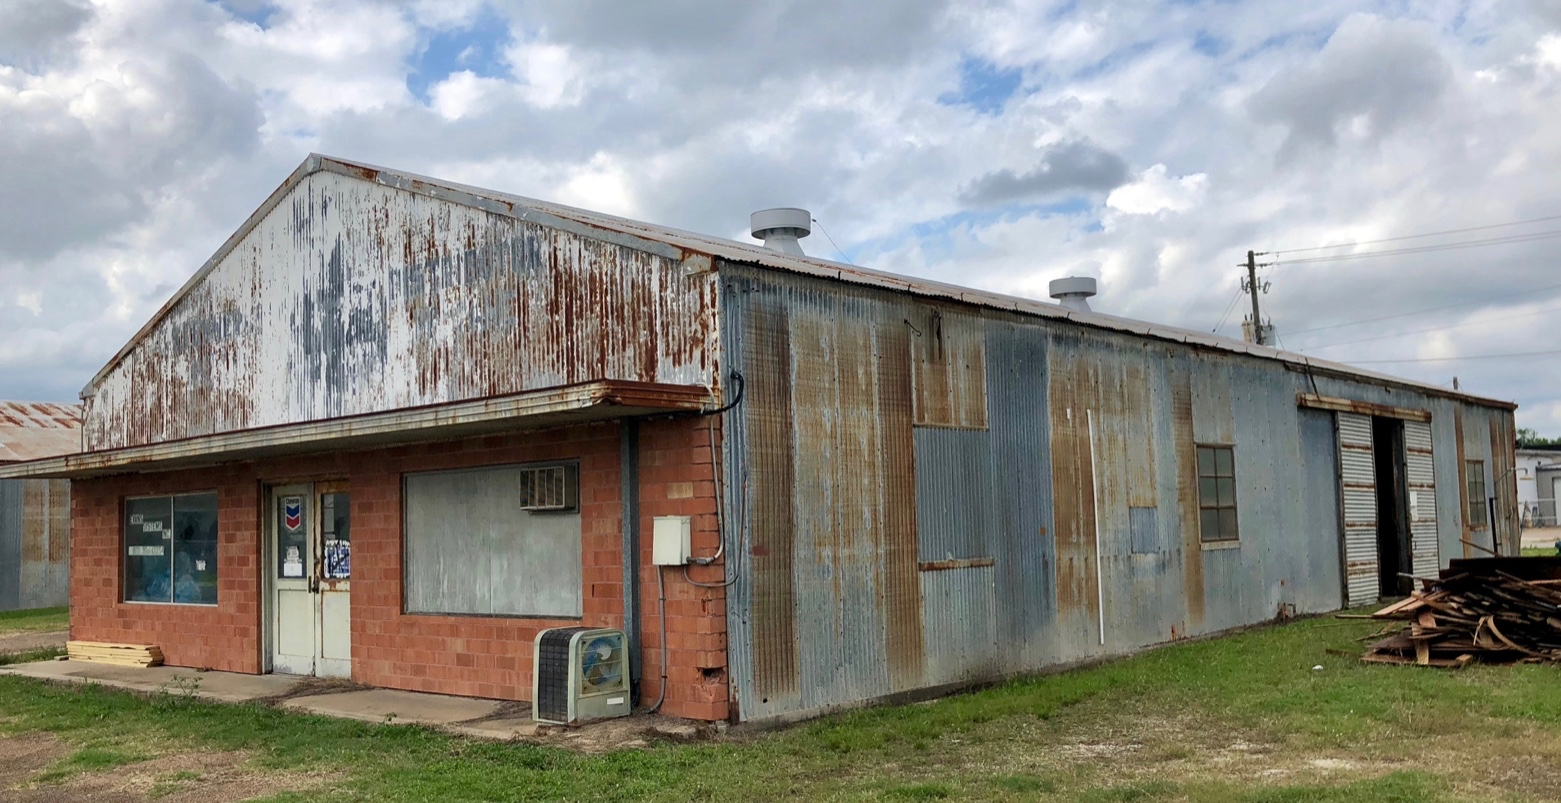 This metal building has good structure, it just needed panels. The building needed the rusting metal wall panels and rusted metal roof panels repaired.